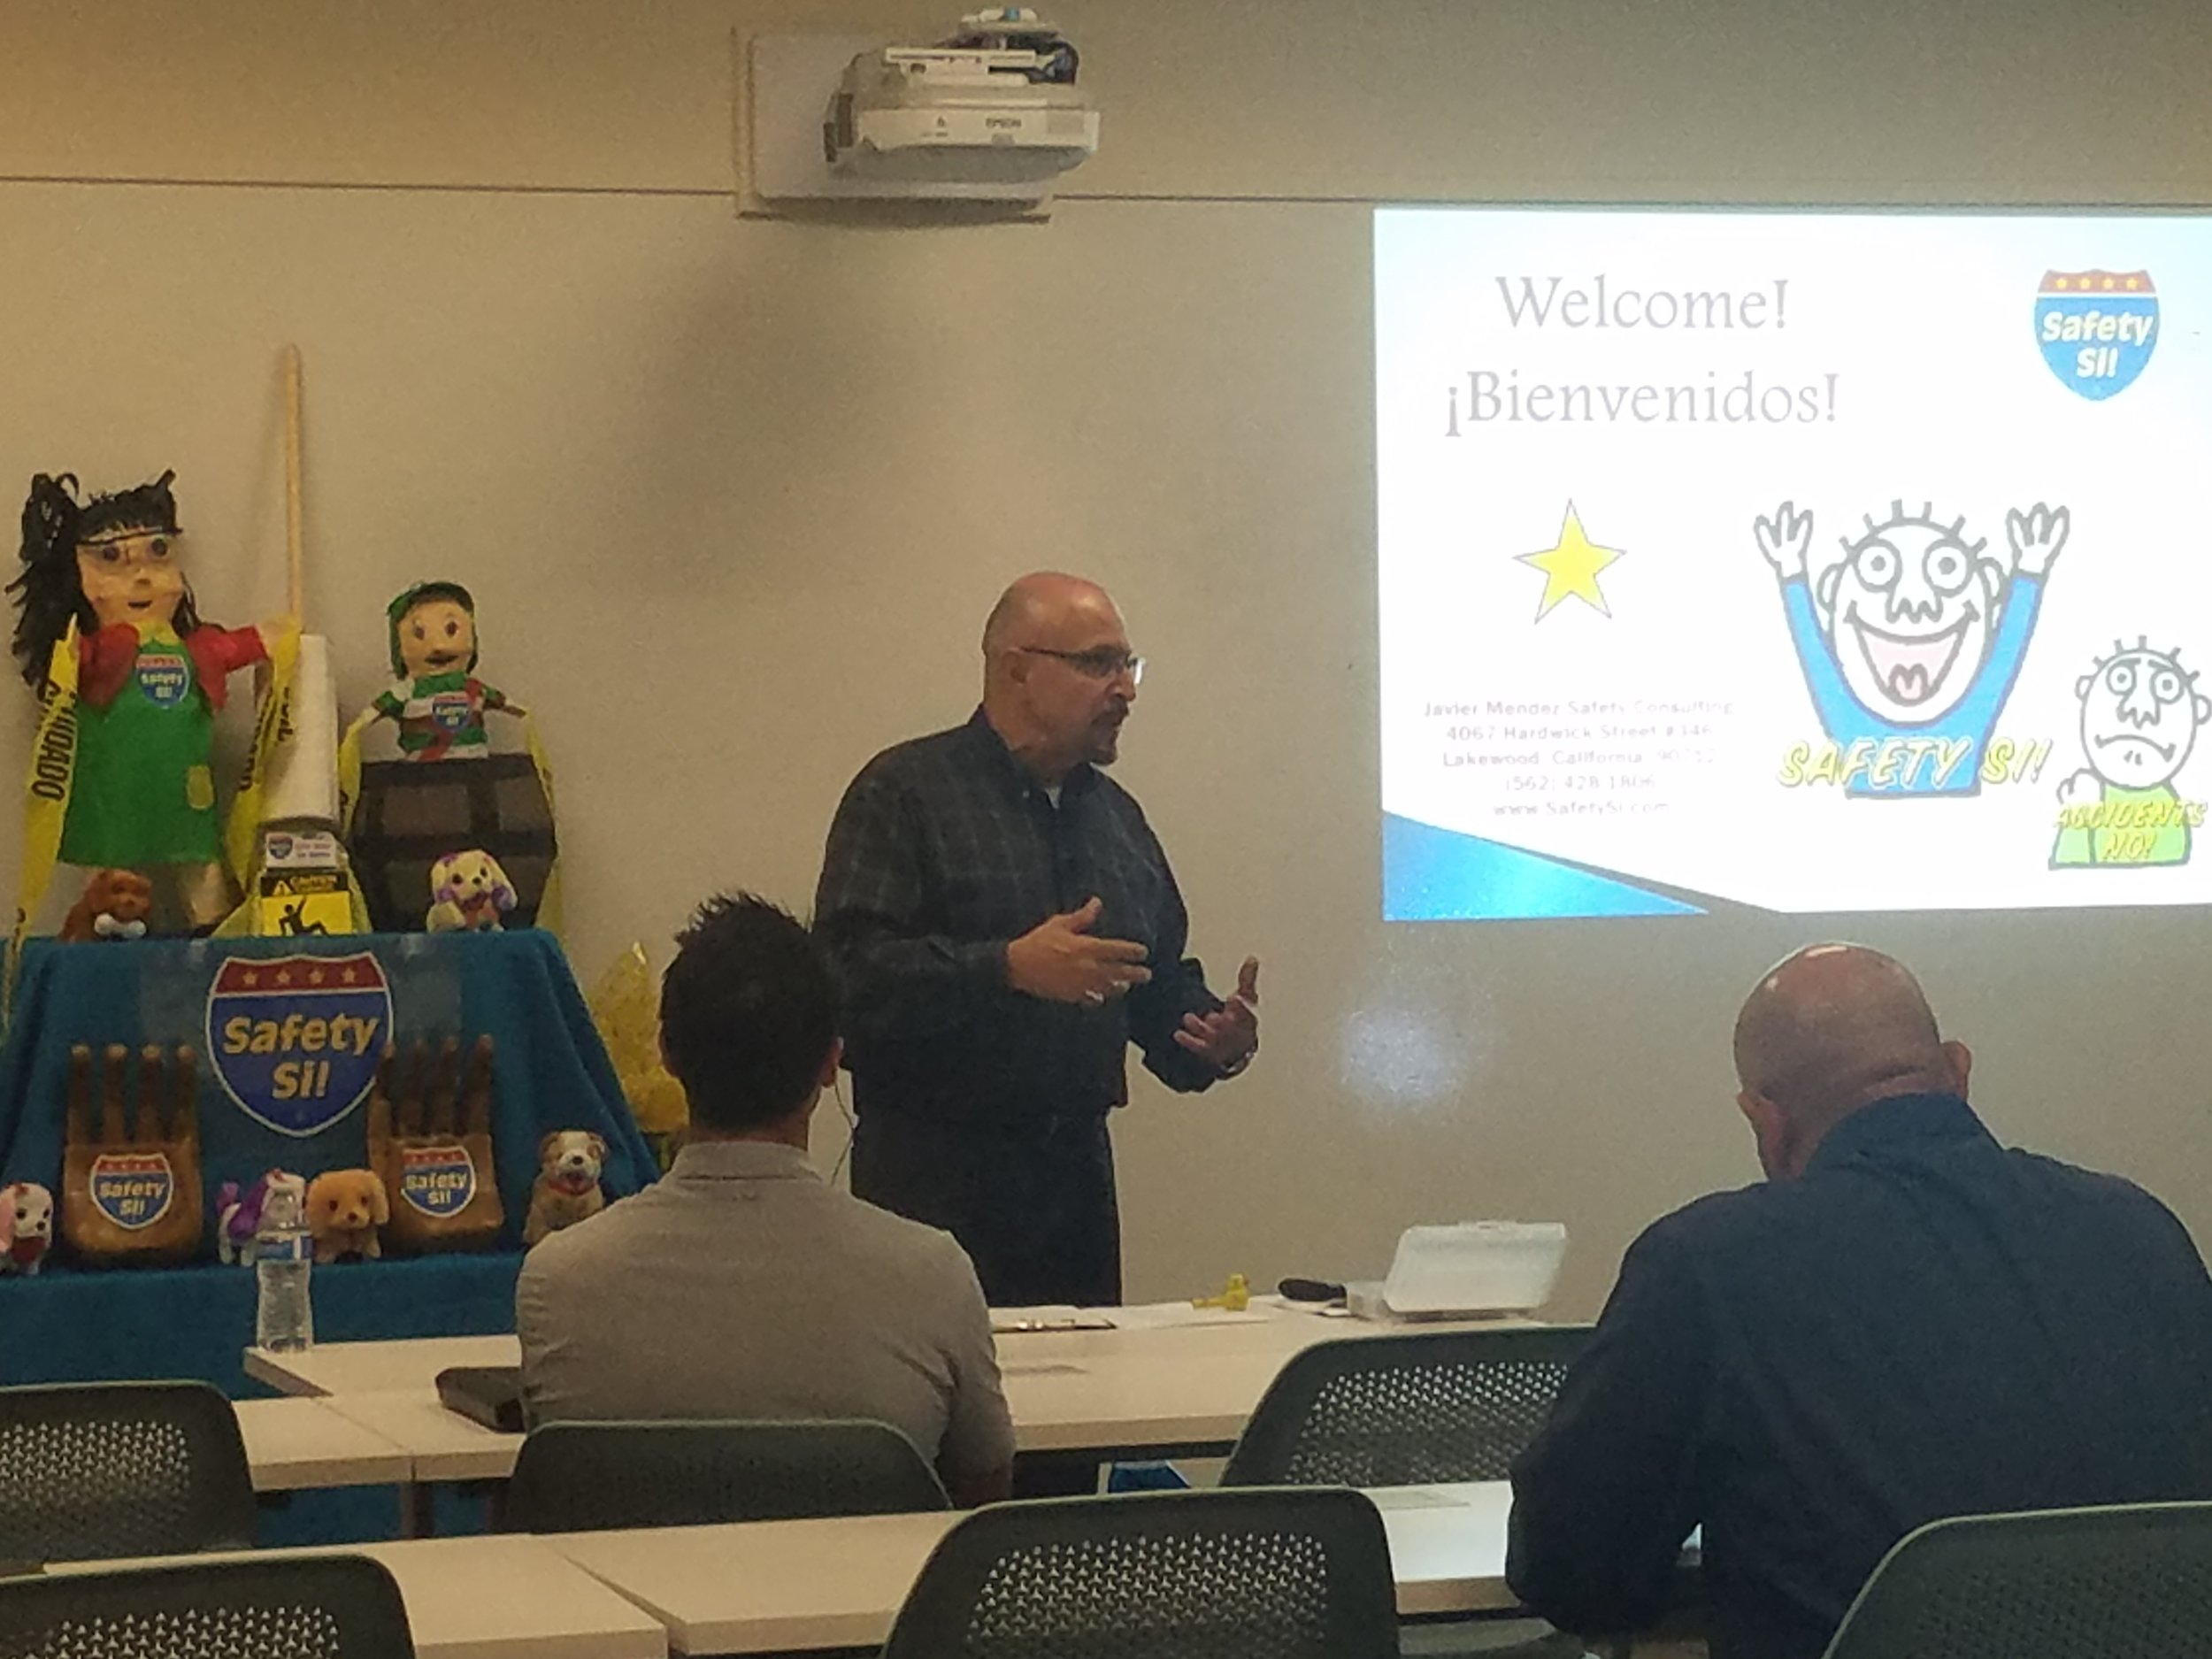 Javier Mendez speaking in front of crowd at the Safety Si! workshop on Friday, April 27, 2018.